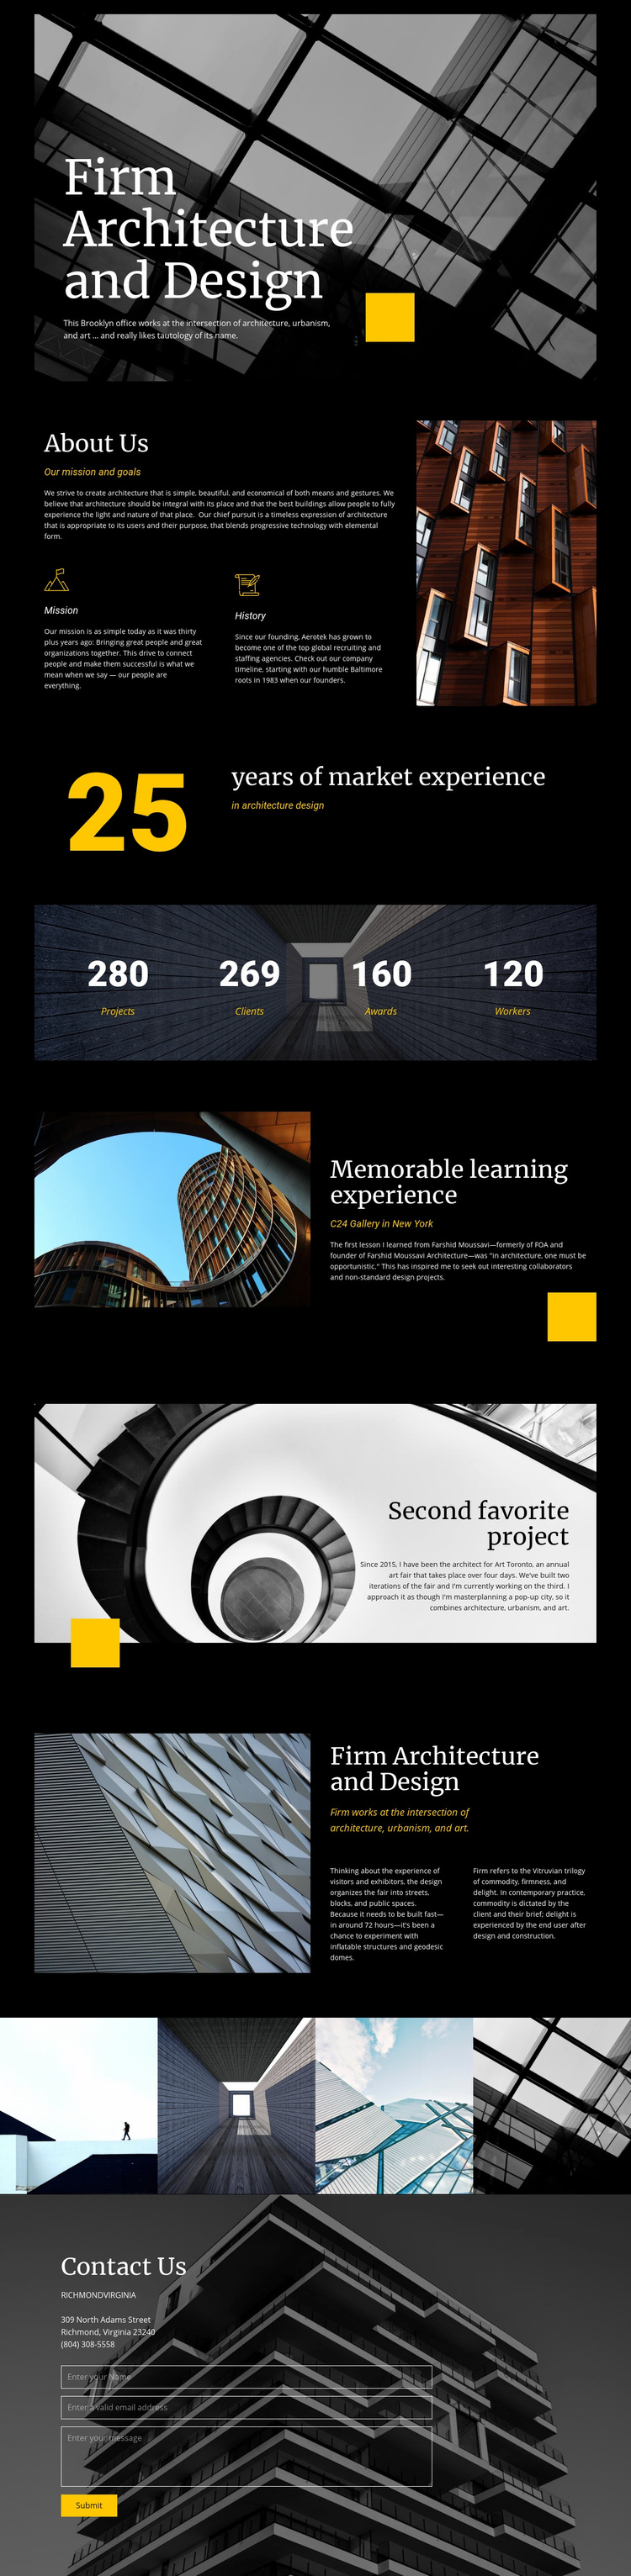 Firm architecture and Design Web Page Designer